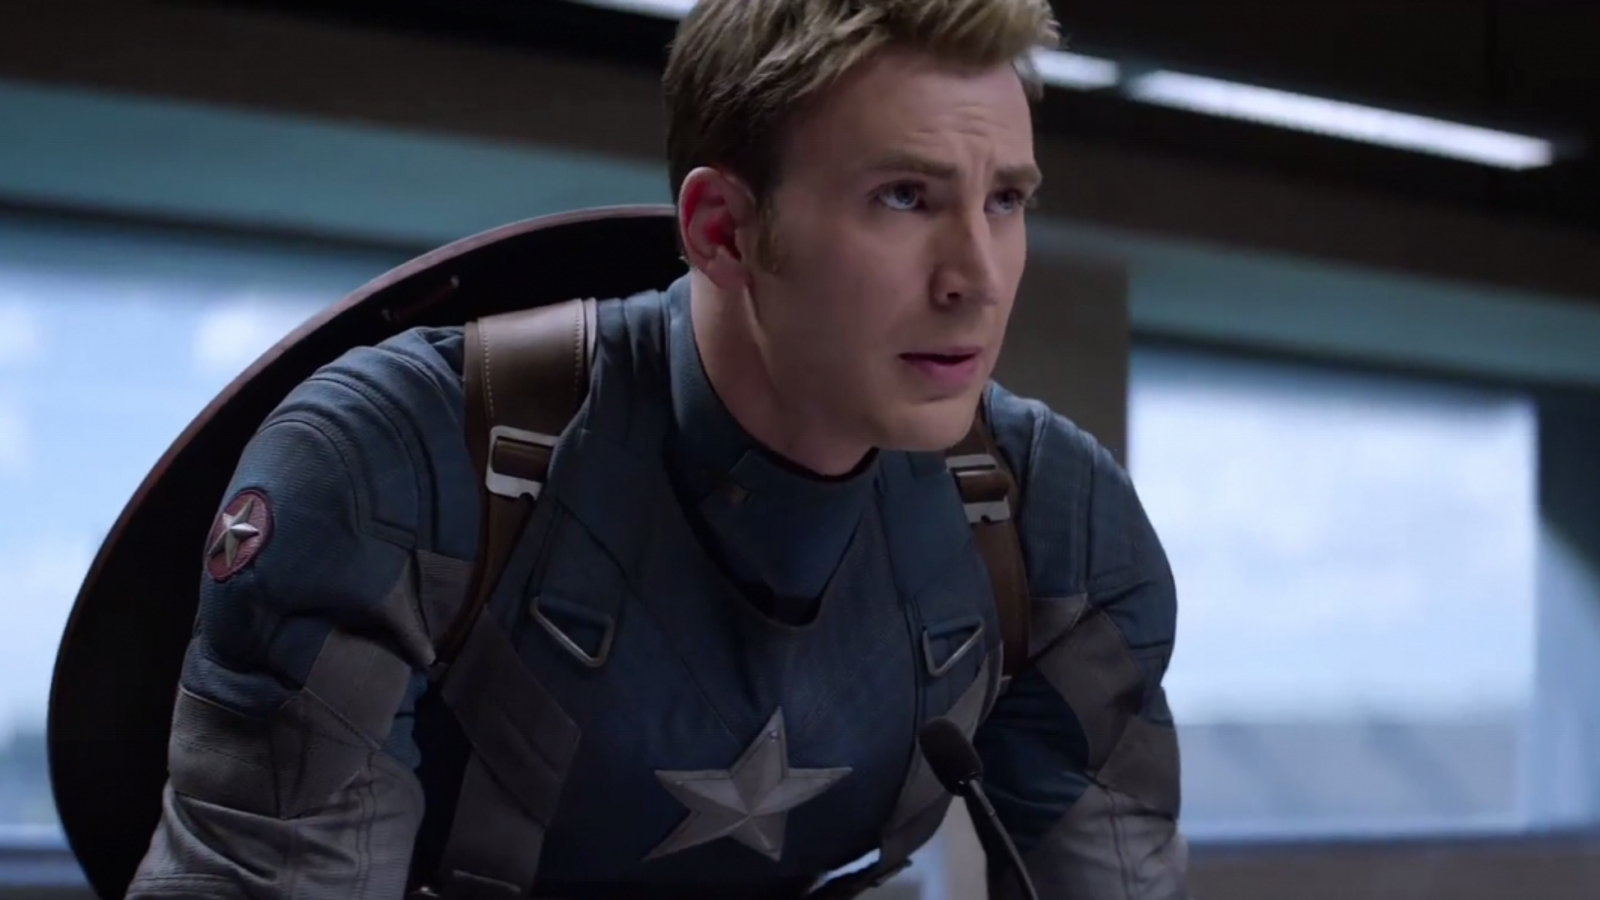 chris-evans-le-dice-adios-al-capitan-america-cover